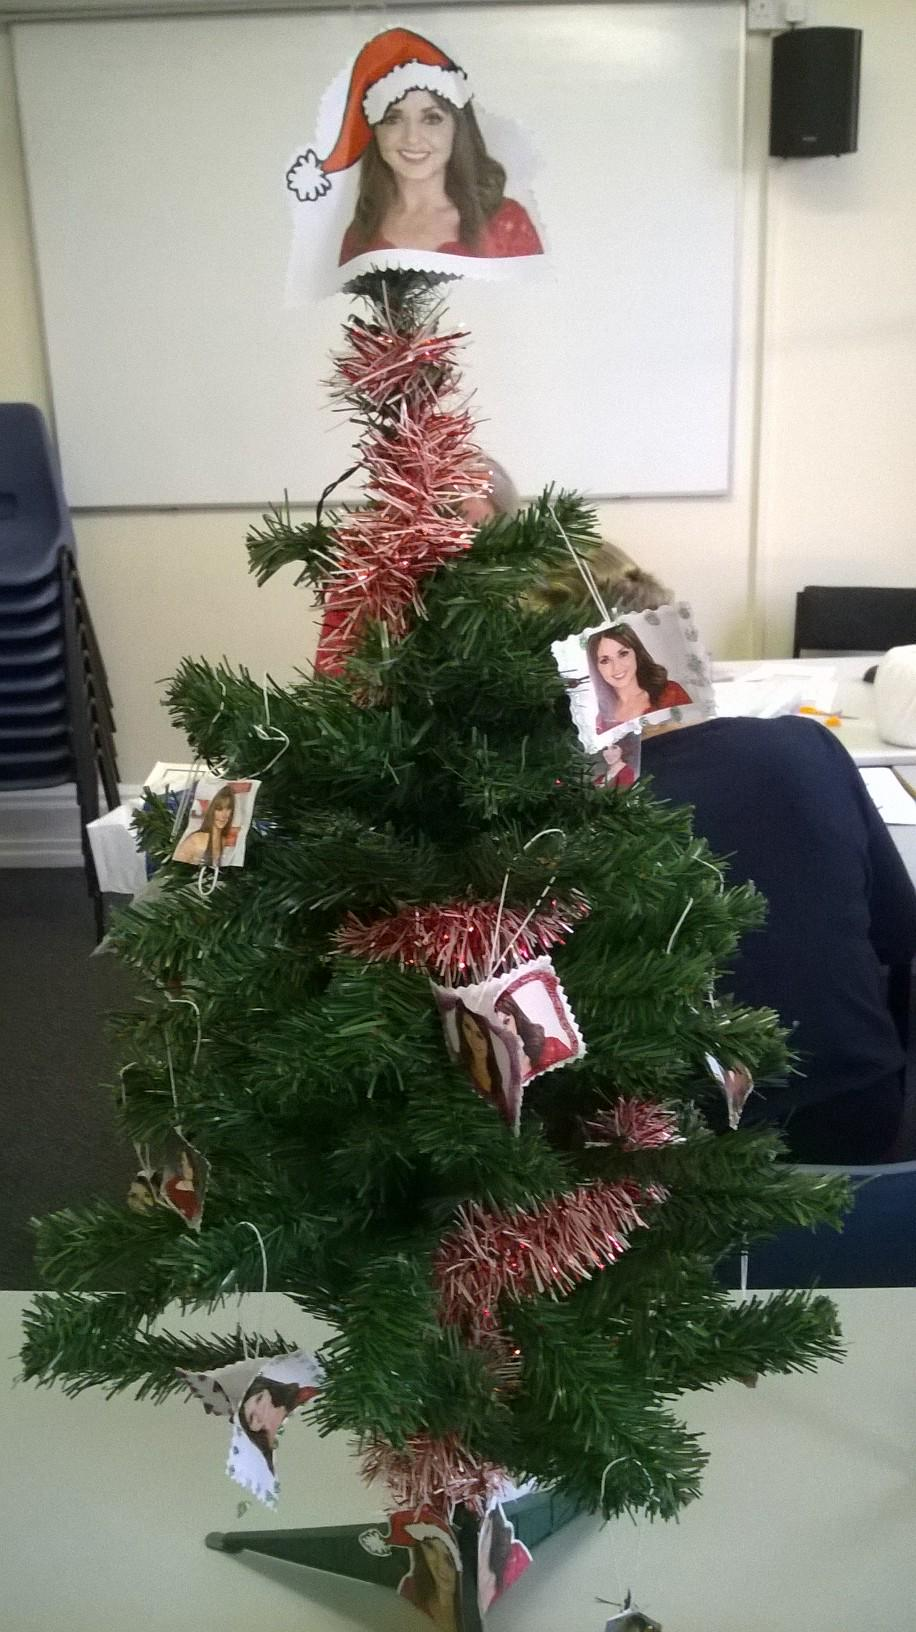 HIlarious...  RT @LeicesterHigh  What do you think of the Charnwood House 'Carol' Christmas Tree? #houseeventmadness http://t.co/Fg09unmnPj